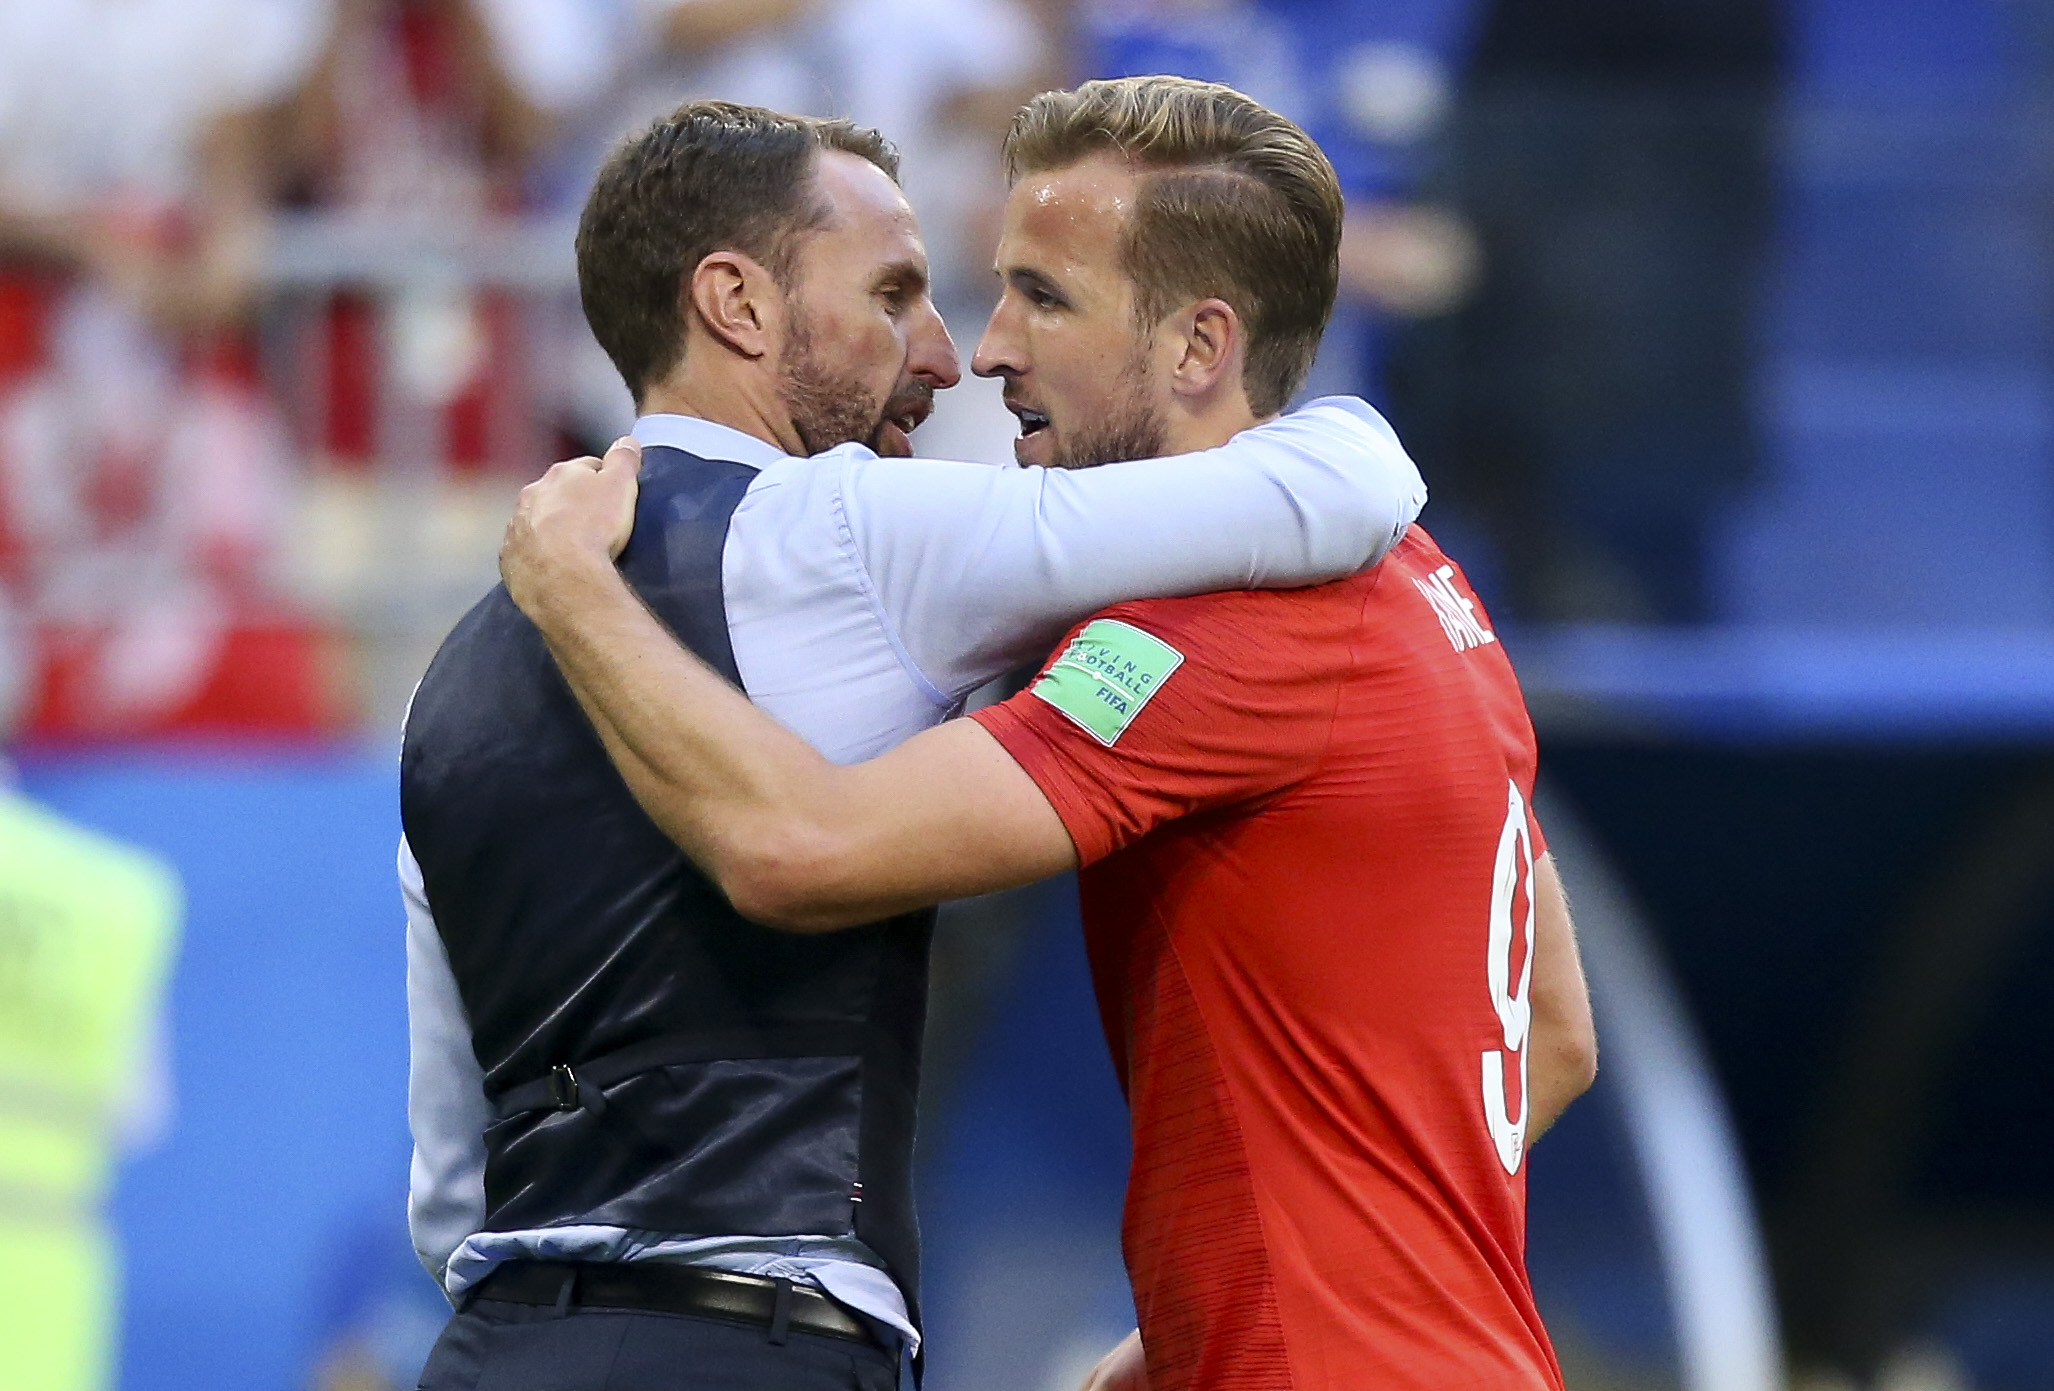 Gareth Southgate's England revolution at World Cup 2018